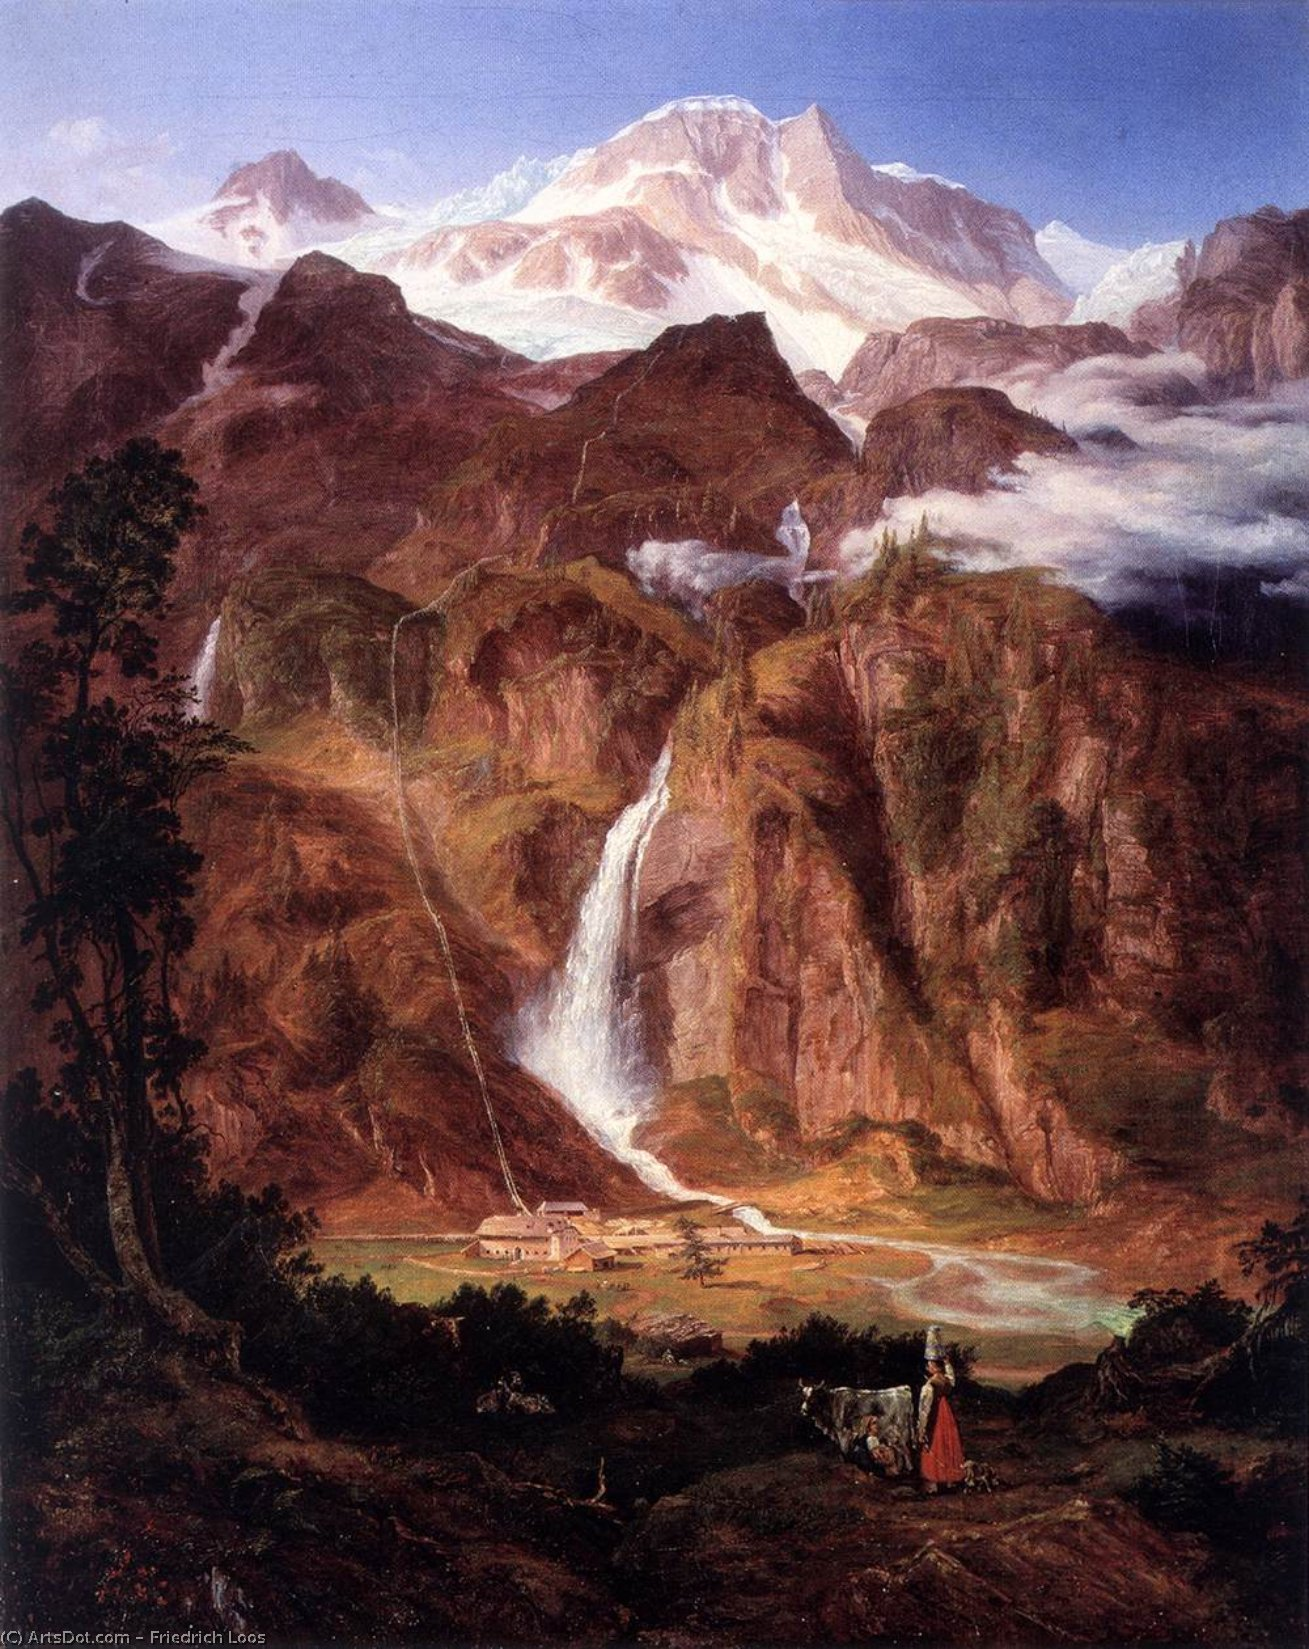 Kolm Saigurn In The Rauris Valley With The Sonnblick by Friedrich Loos (1797-1890, Austria)